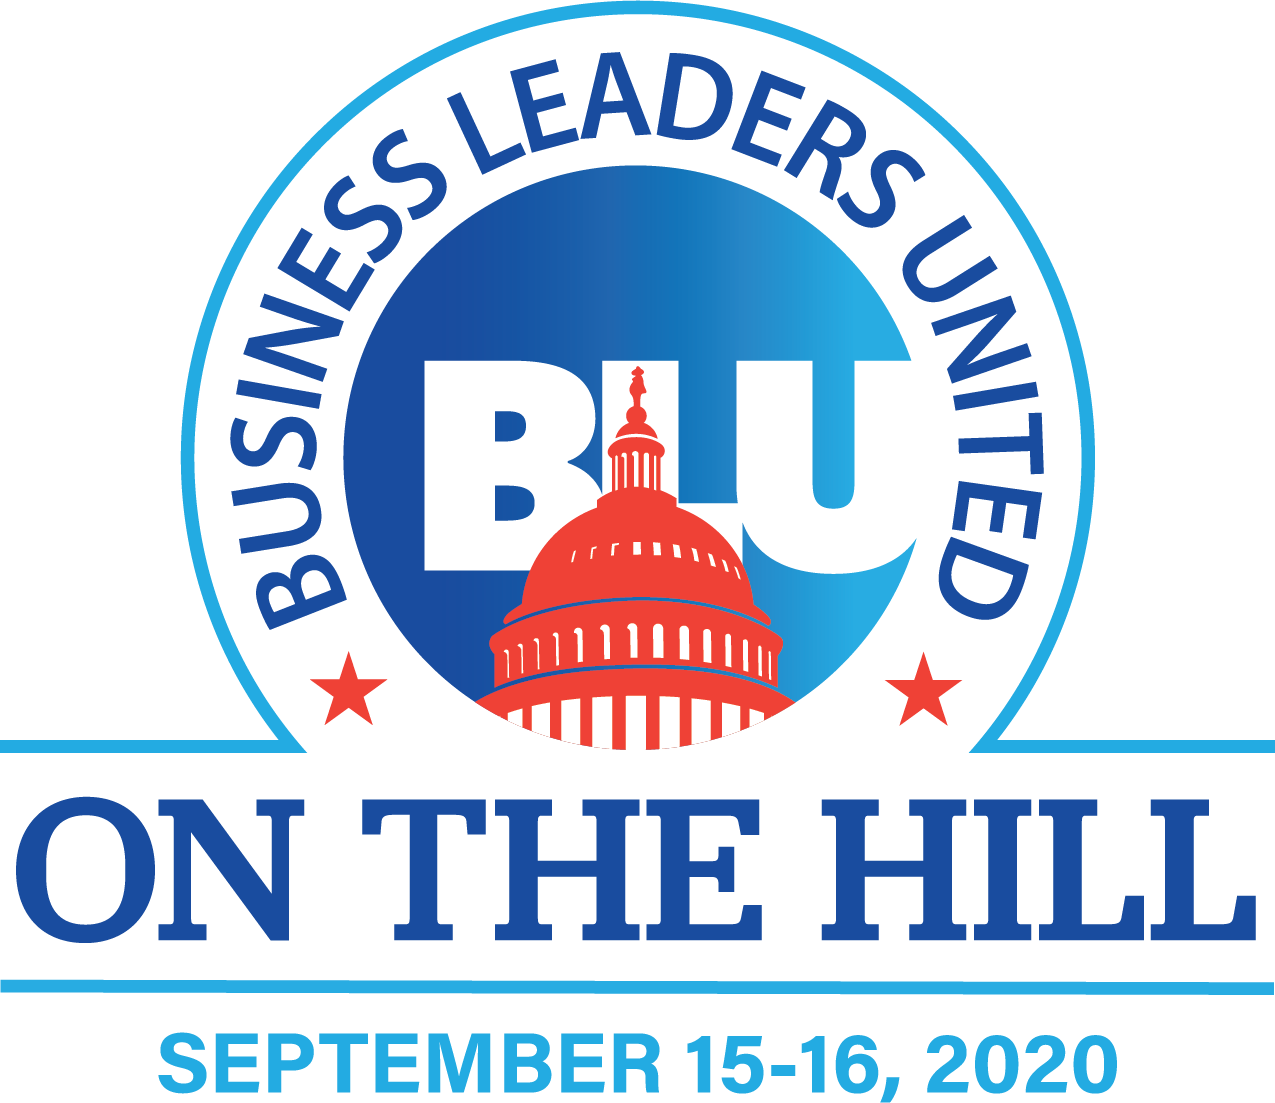 Business Leaders United on the Hill 2020